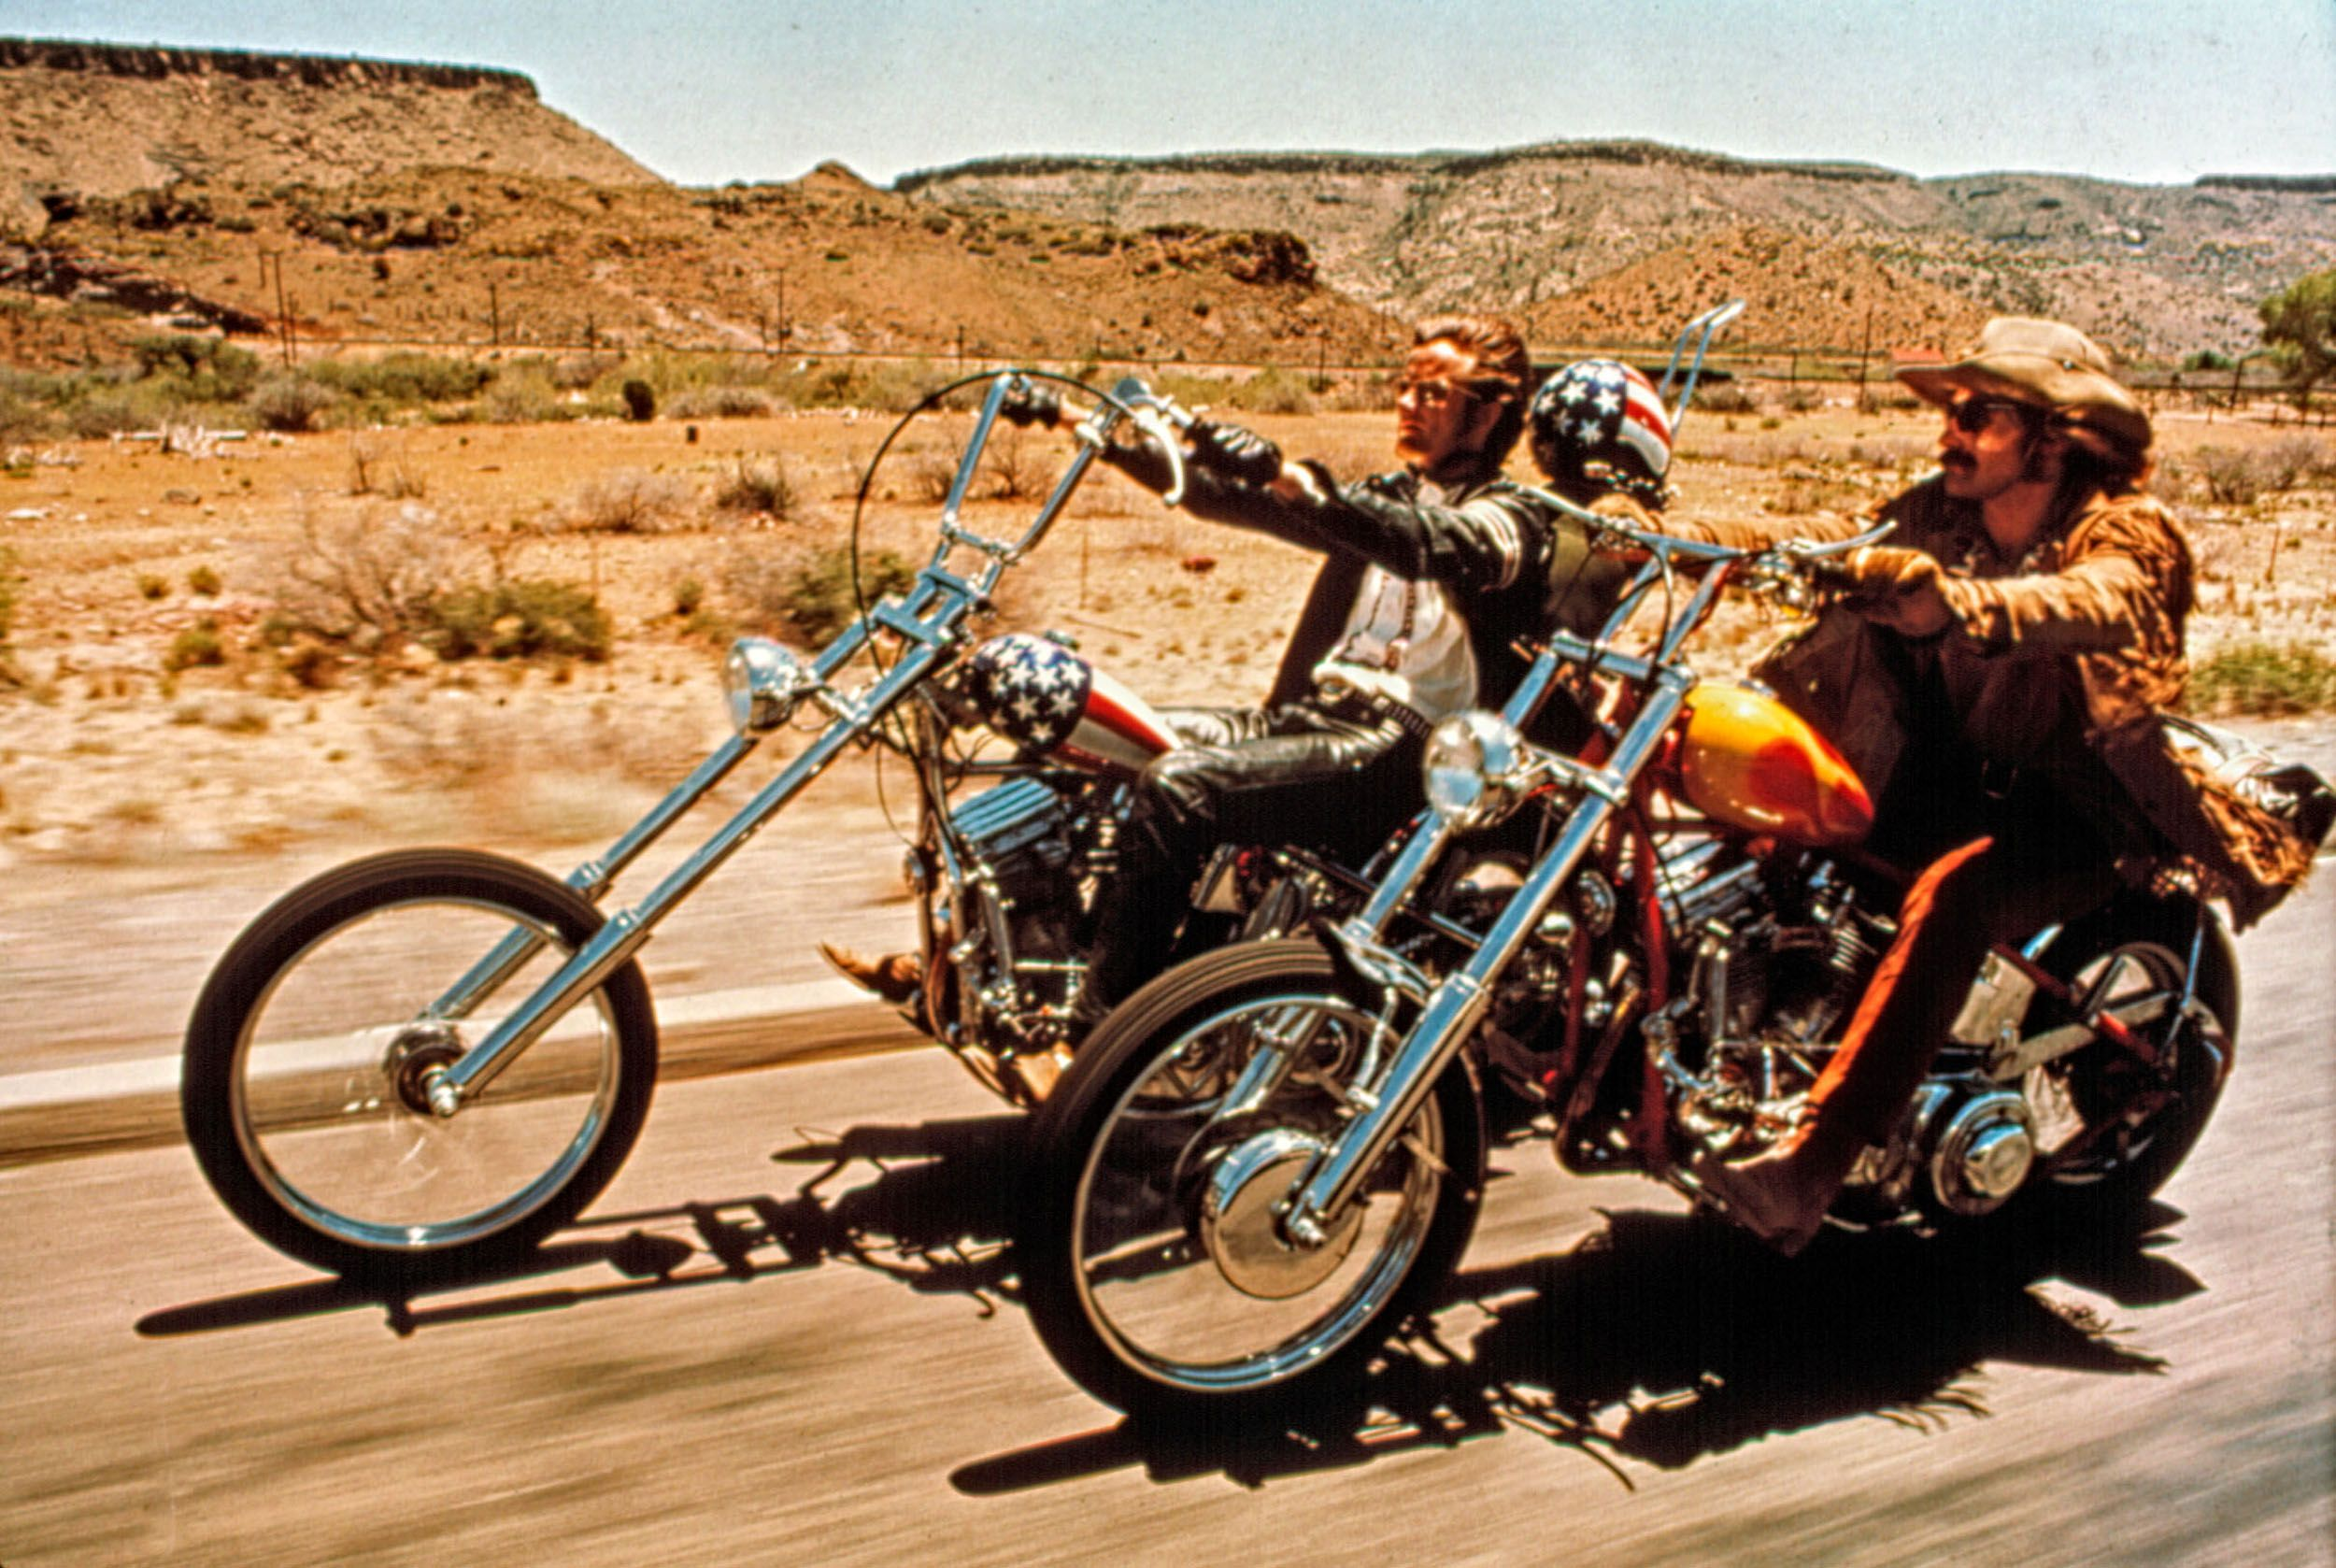 Peter Fonda and Dennis Hopper in Easy Rider .